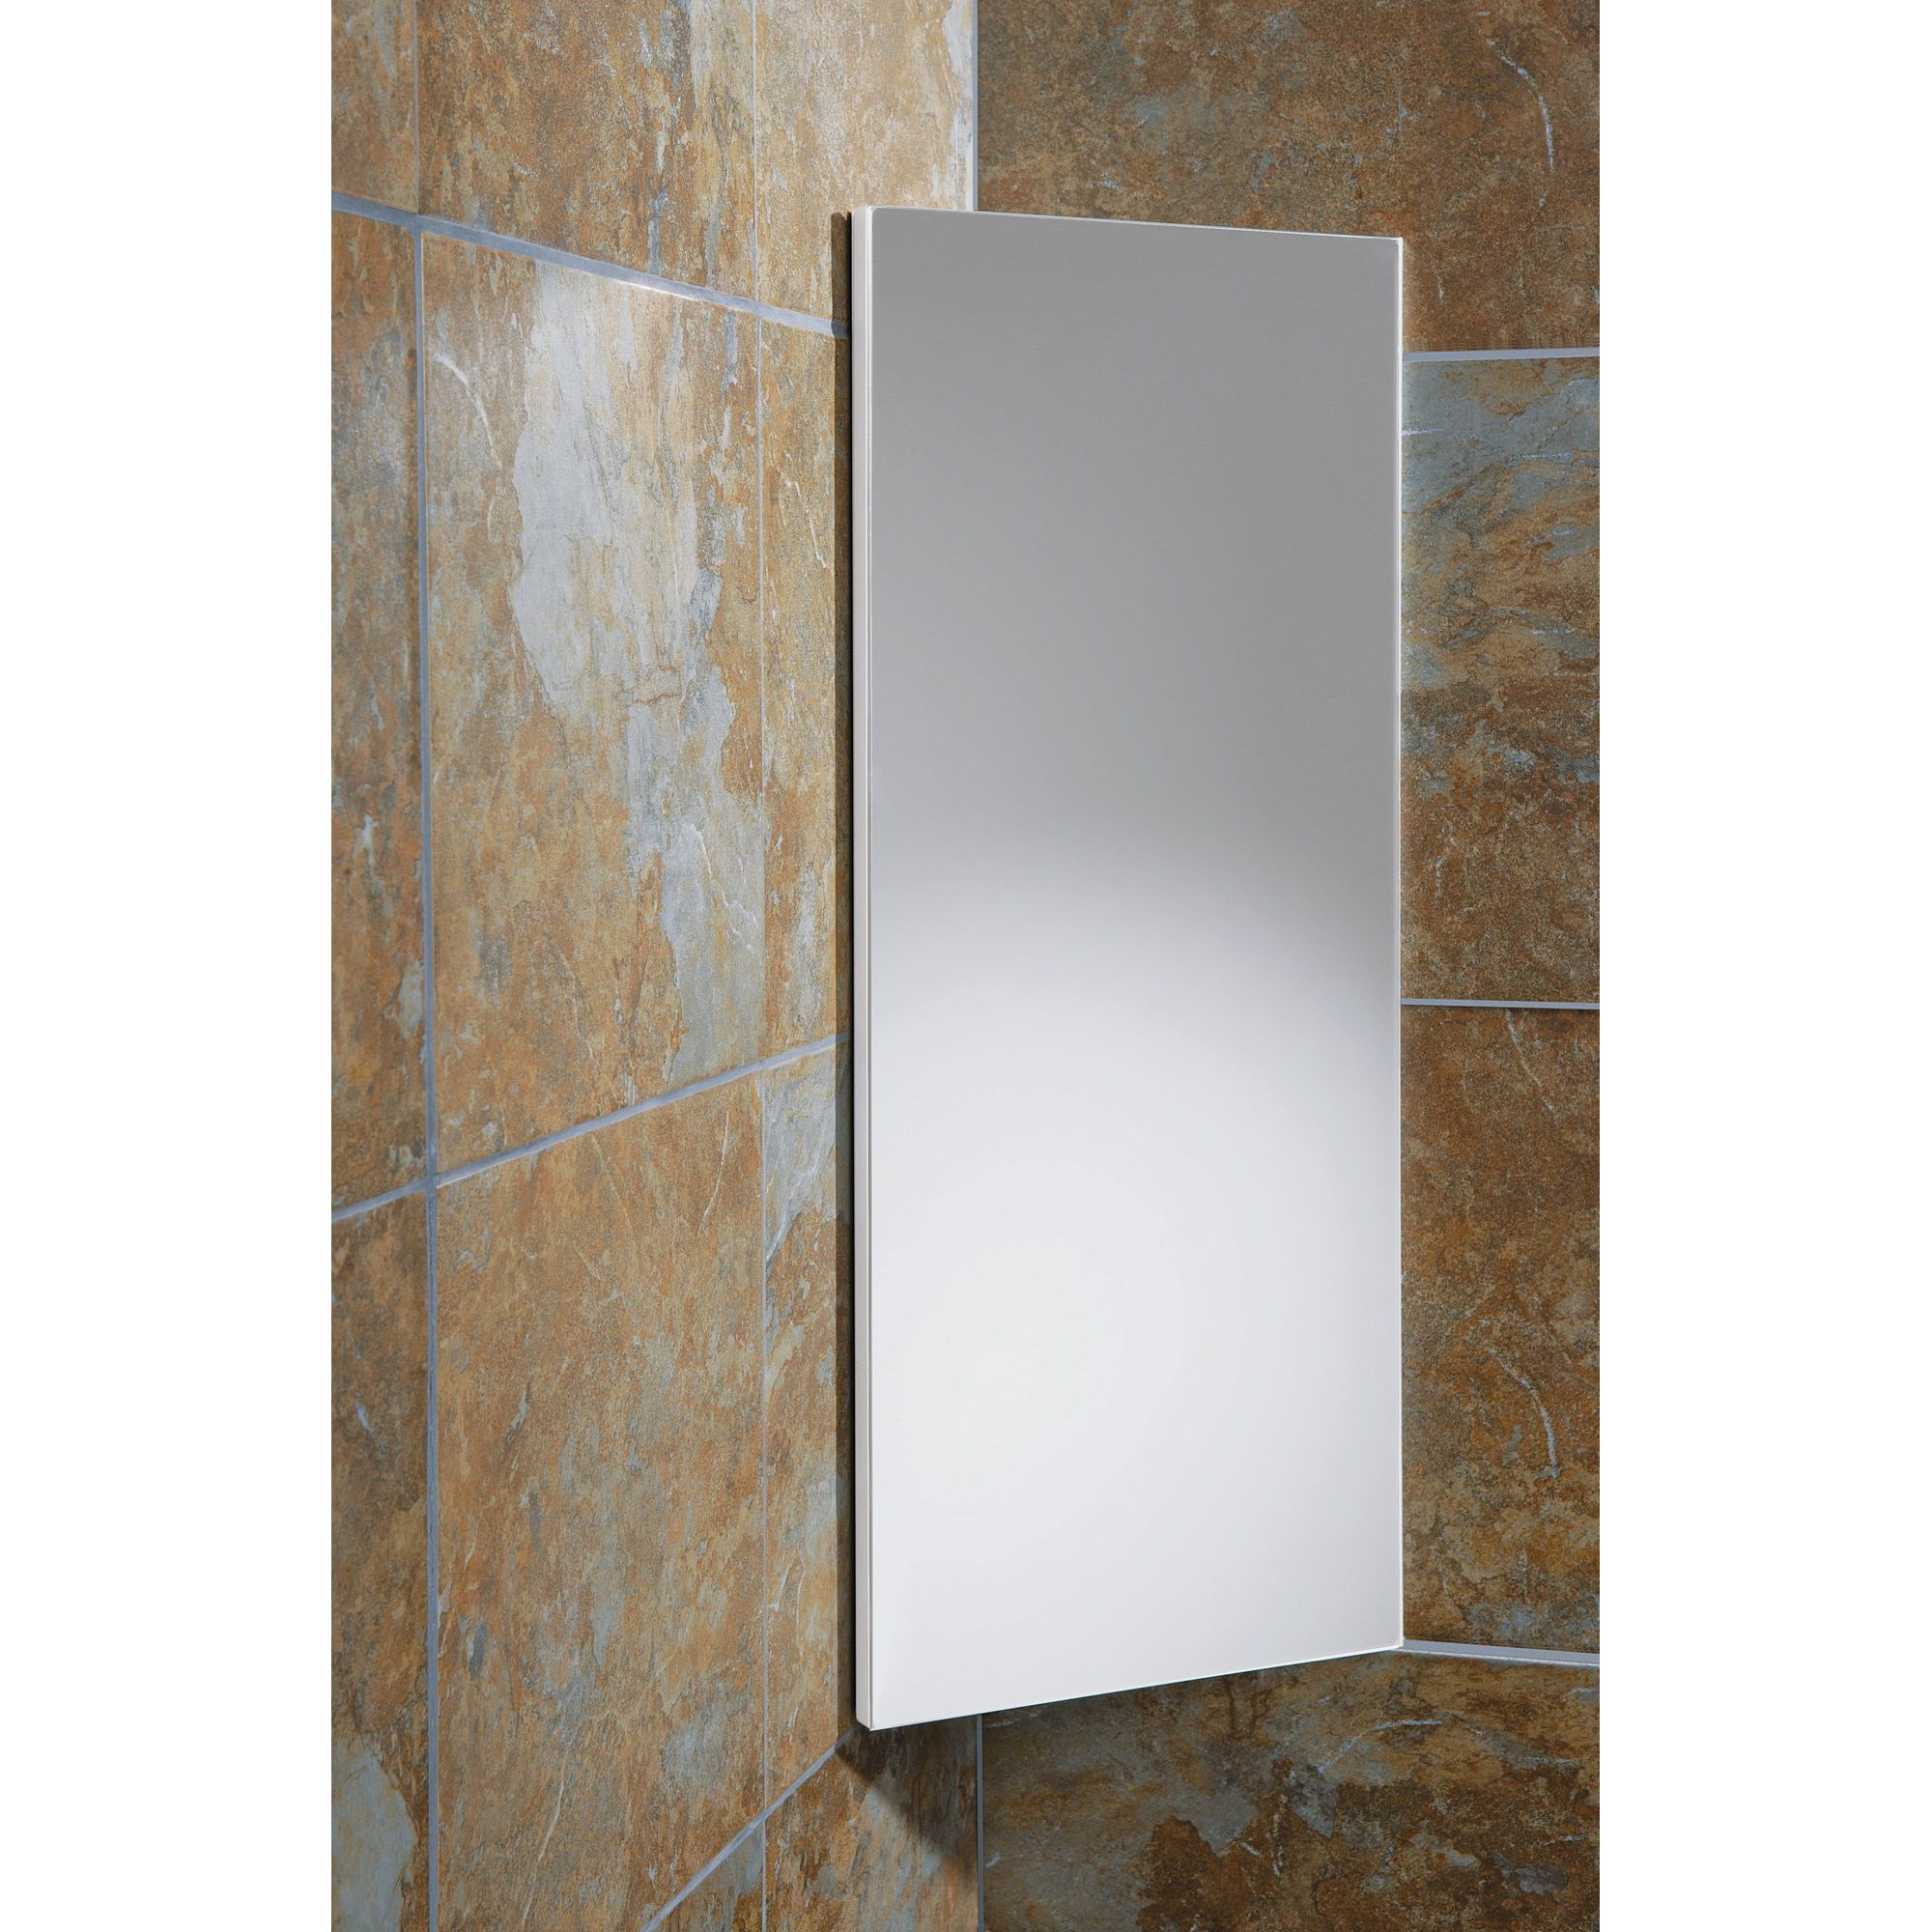 HIB Denia Mirror Corner Cabinet at Tesco Direct